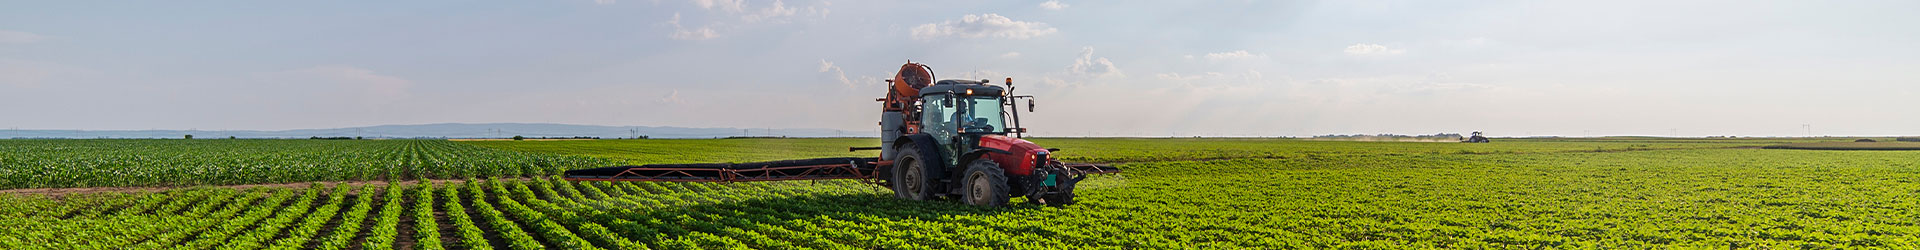 A banner image showing a tractor in a field of crops